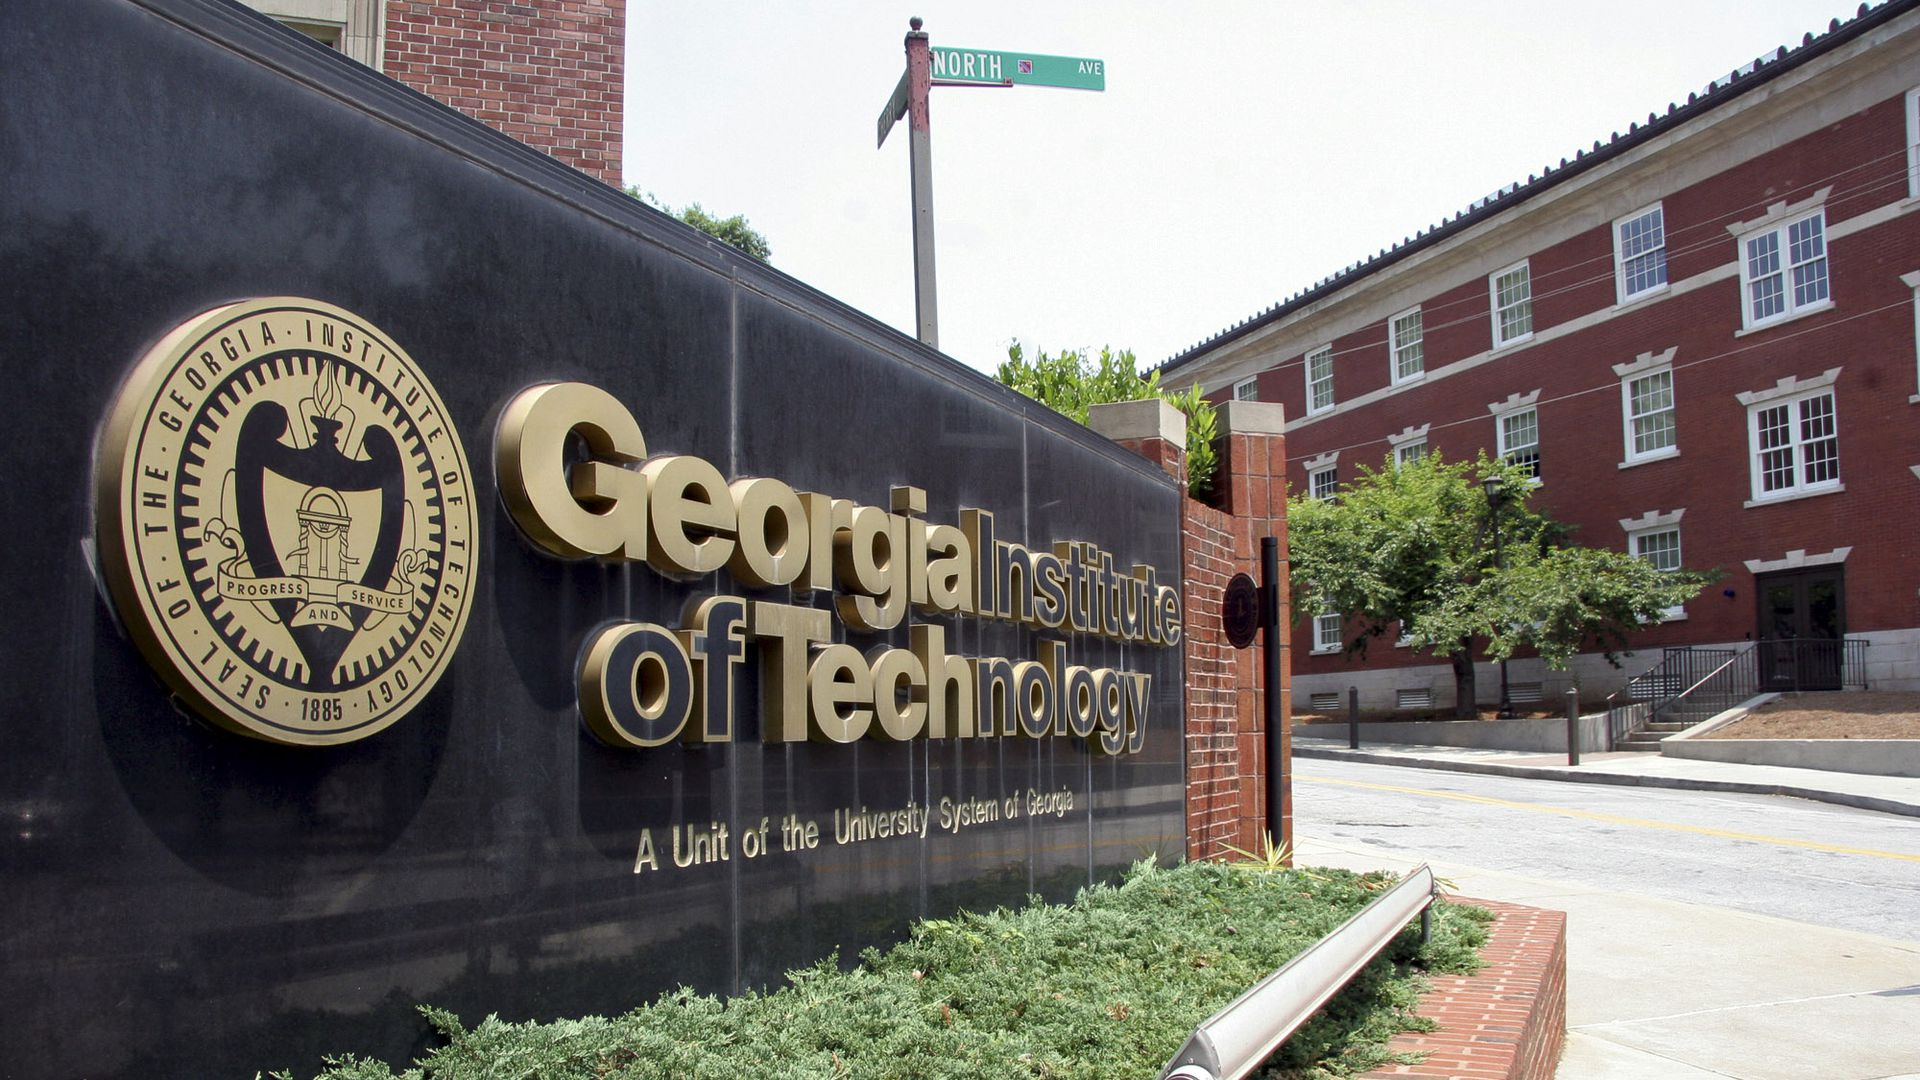 A black sign with gold lettering positioned at the entrance of the Georgia Tech campus.